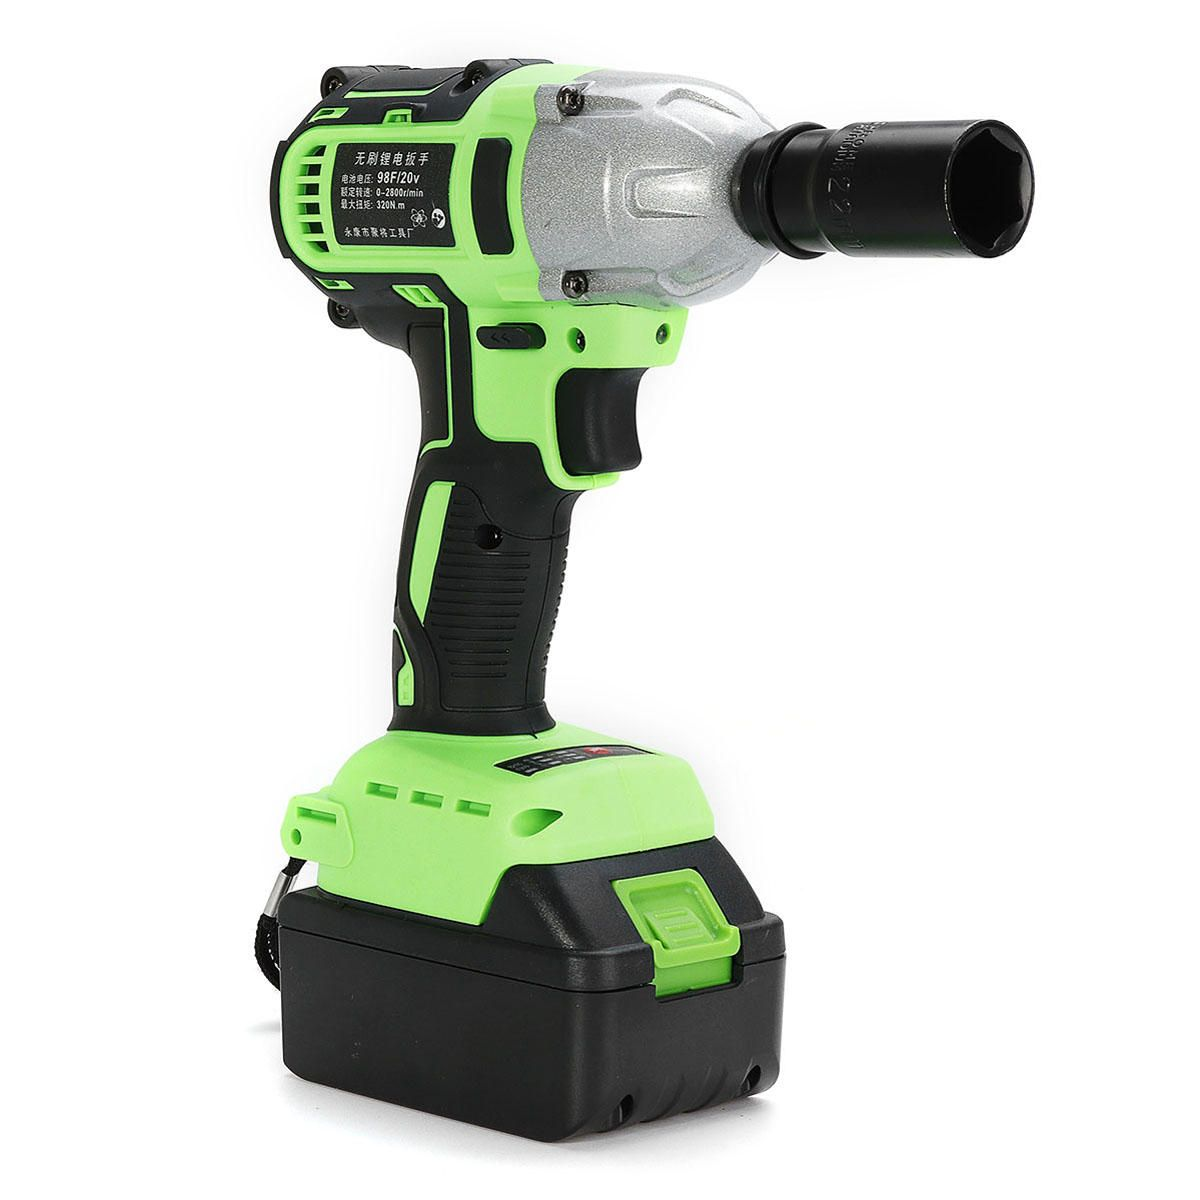 98f 20000mah Brushless Cordless Impact Wrench Electric Driver Drill 320n M W Led Light Power Tools From Tools Industrial Scientific On Banggood Com Led Lights Drill